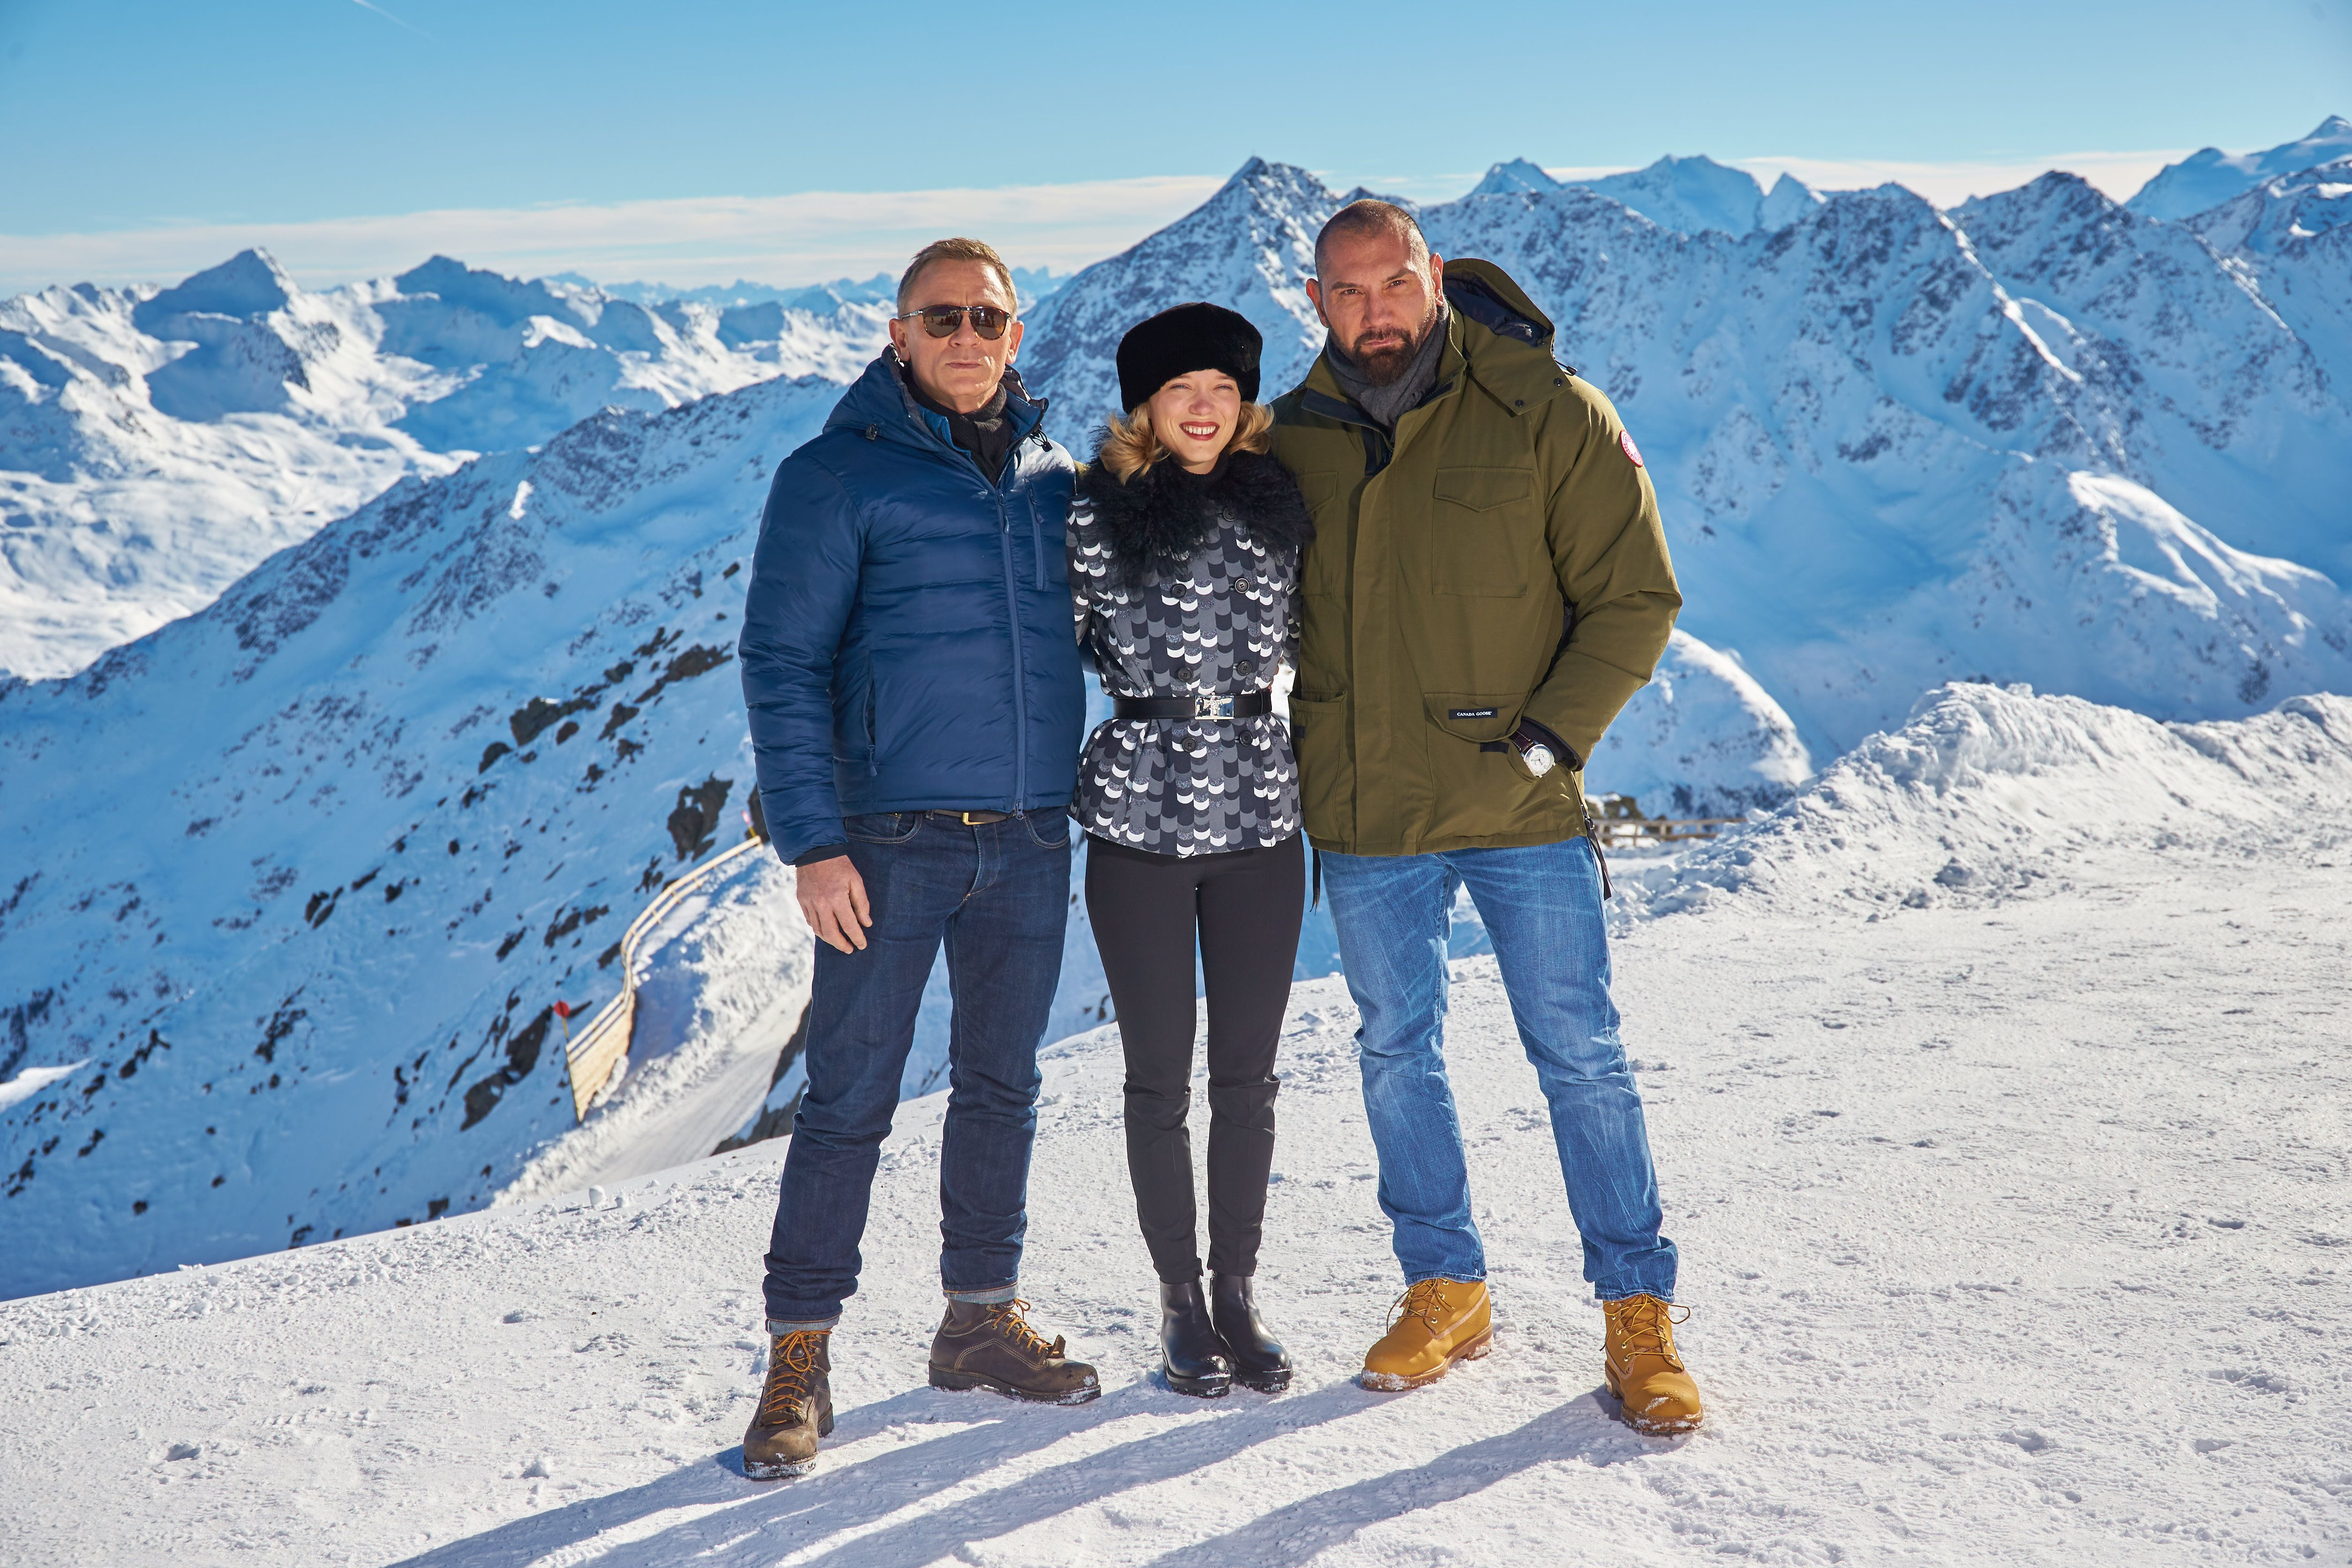 spectre images: daniel craig, lea seydoux, and dave bautista take in